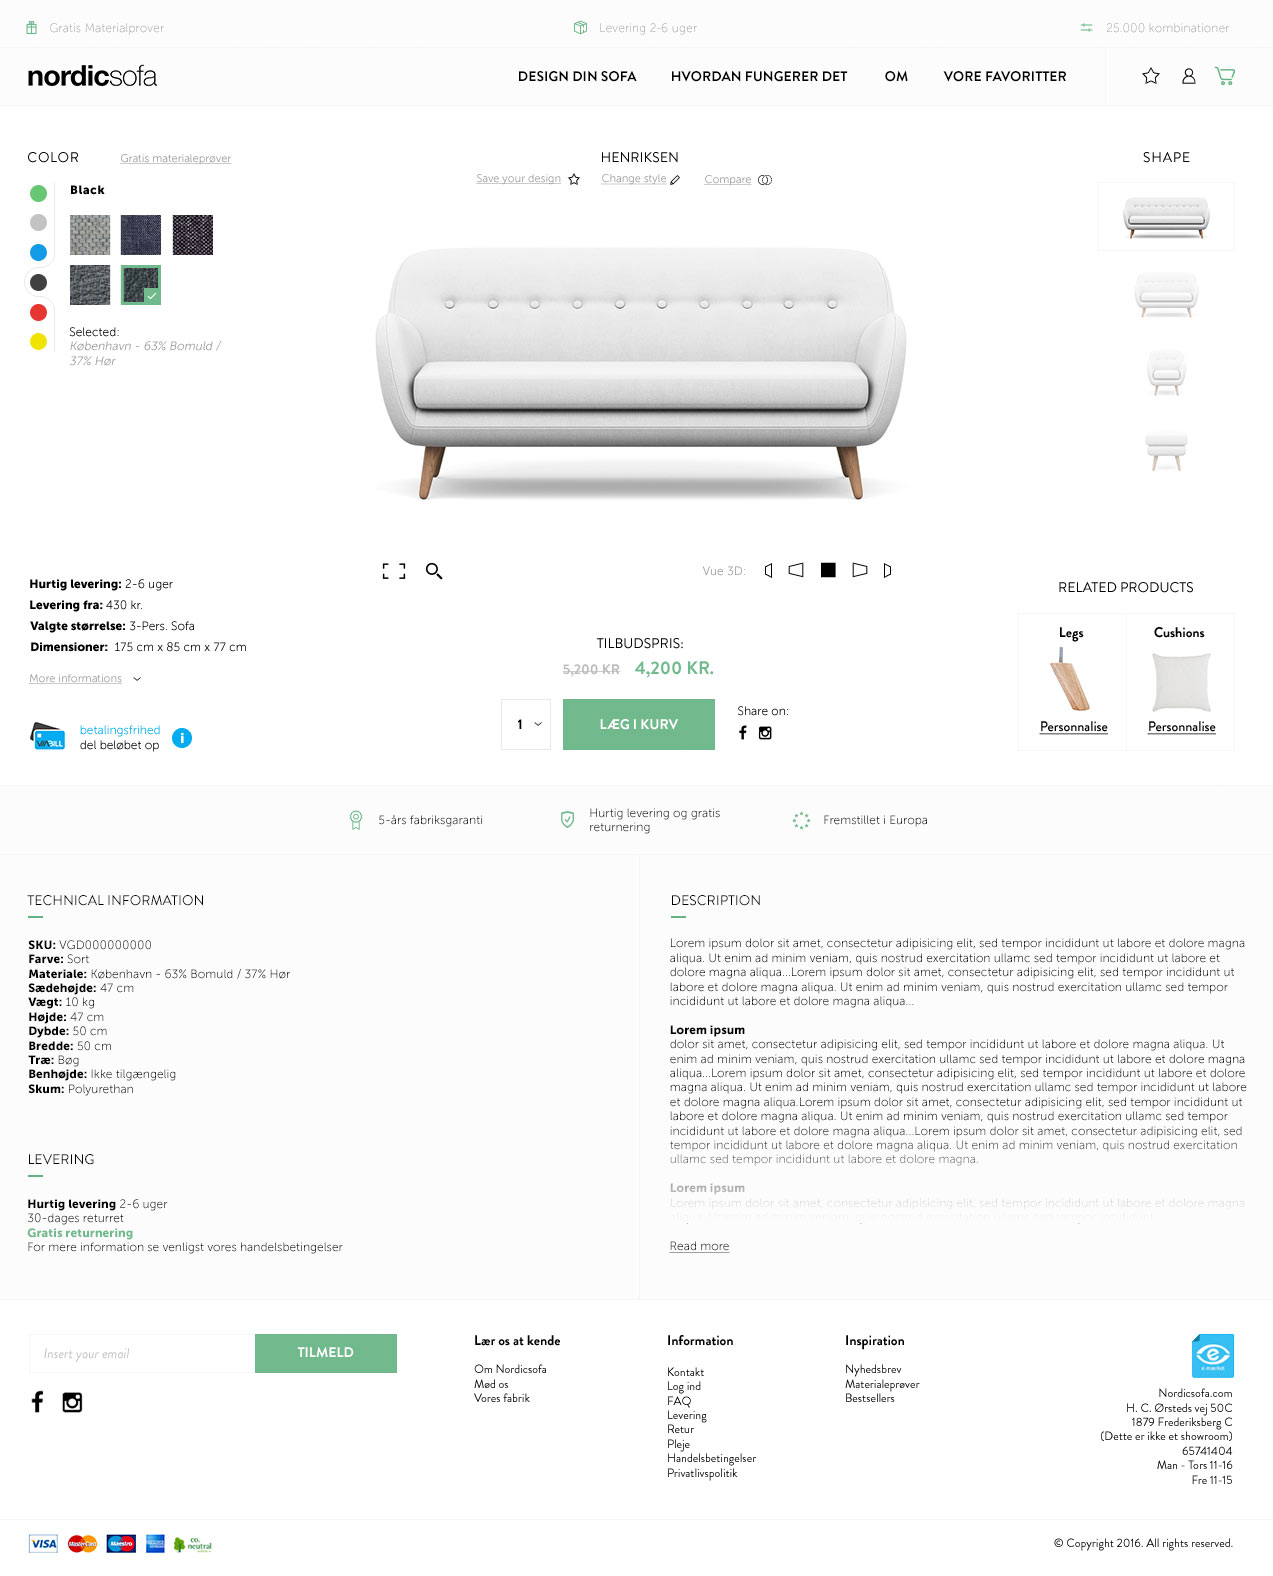 Webdesign nordicsofa Product page, graphic design with ux